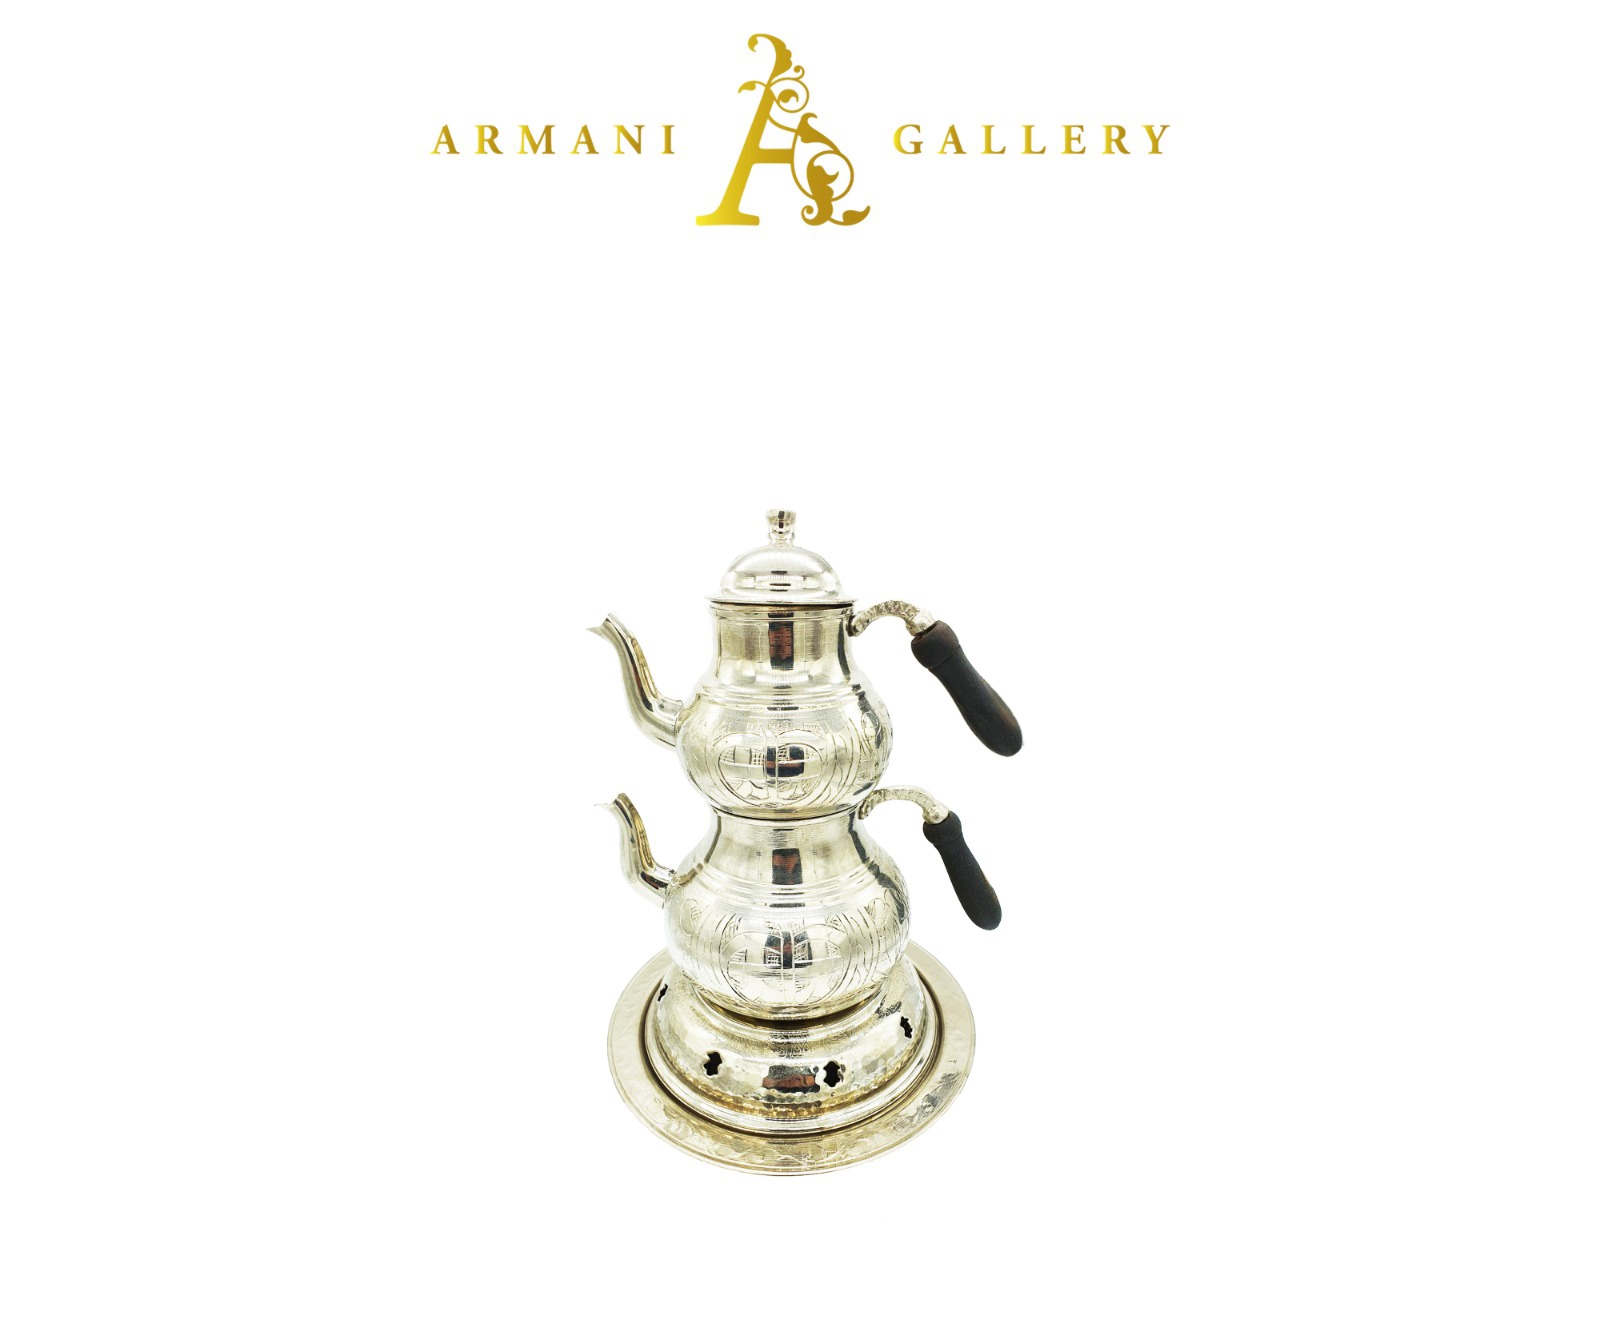 Buy Silver Turkish Tea Pot with Candle Warmer - Large